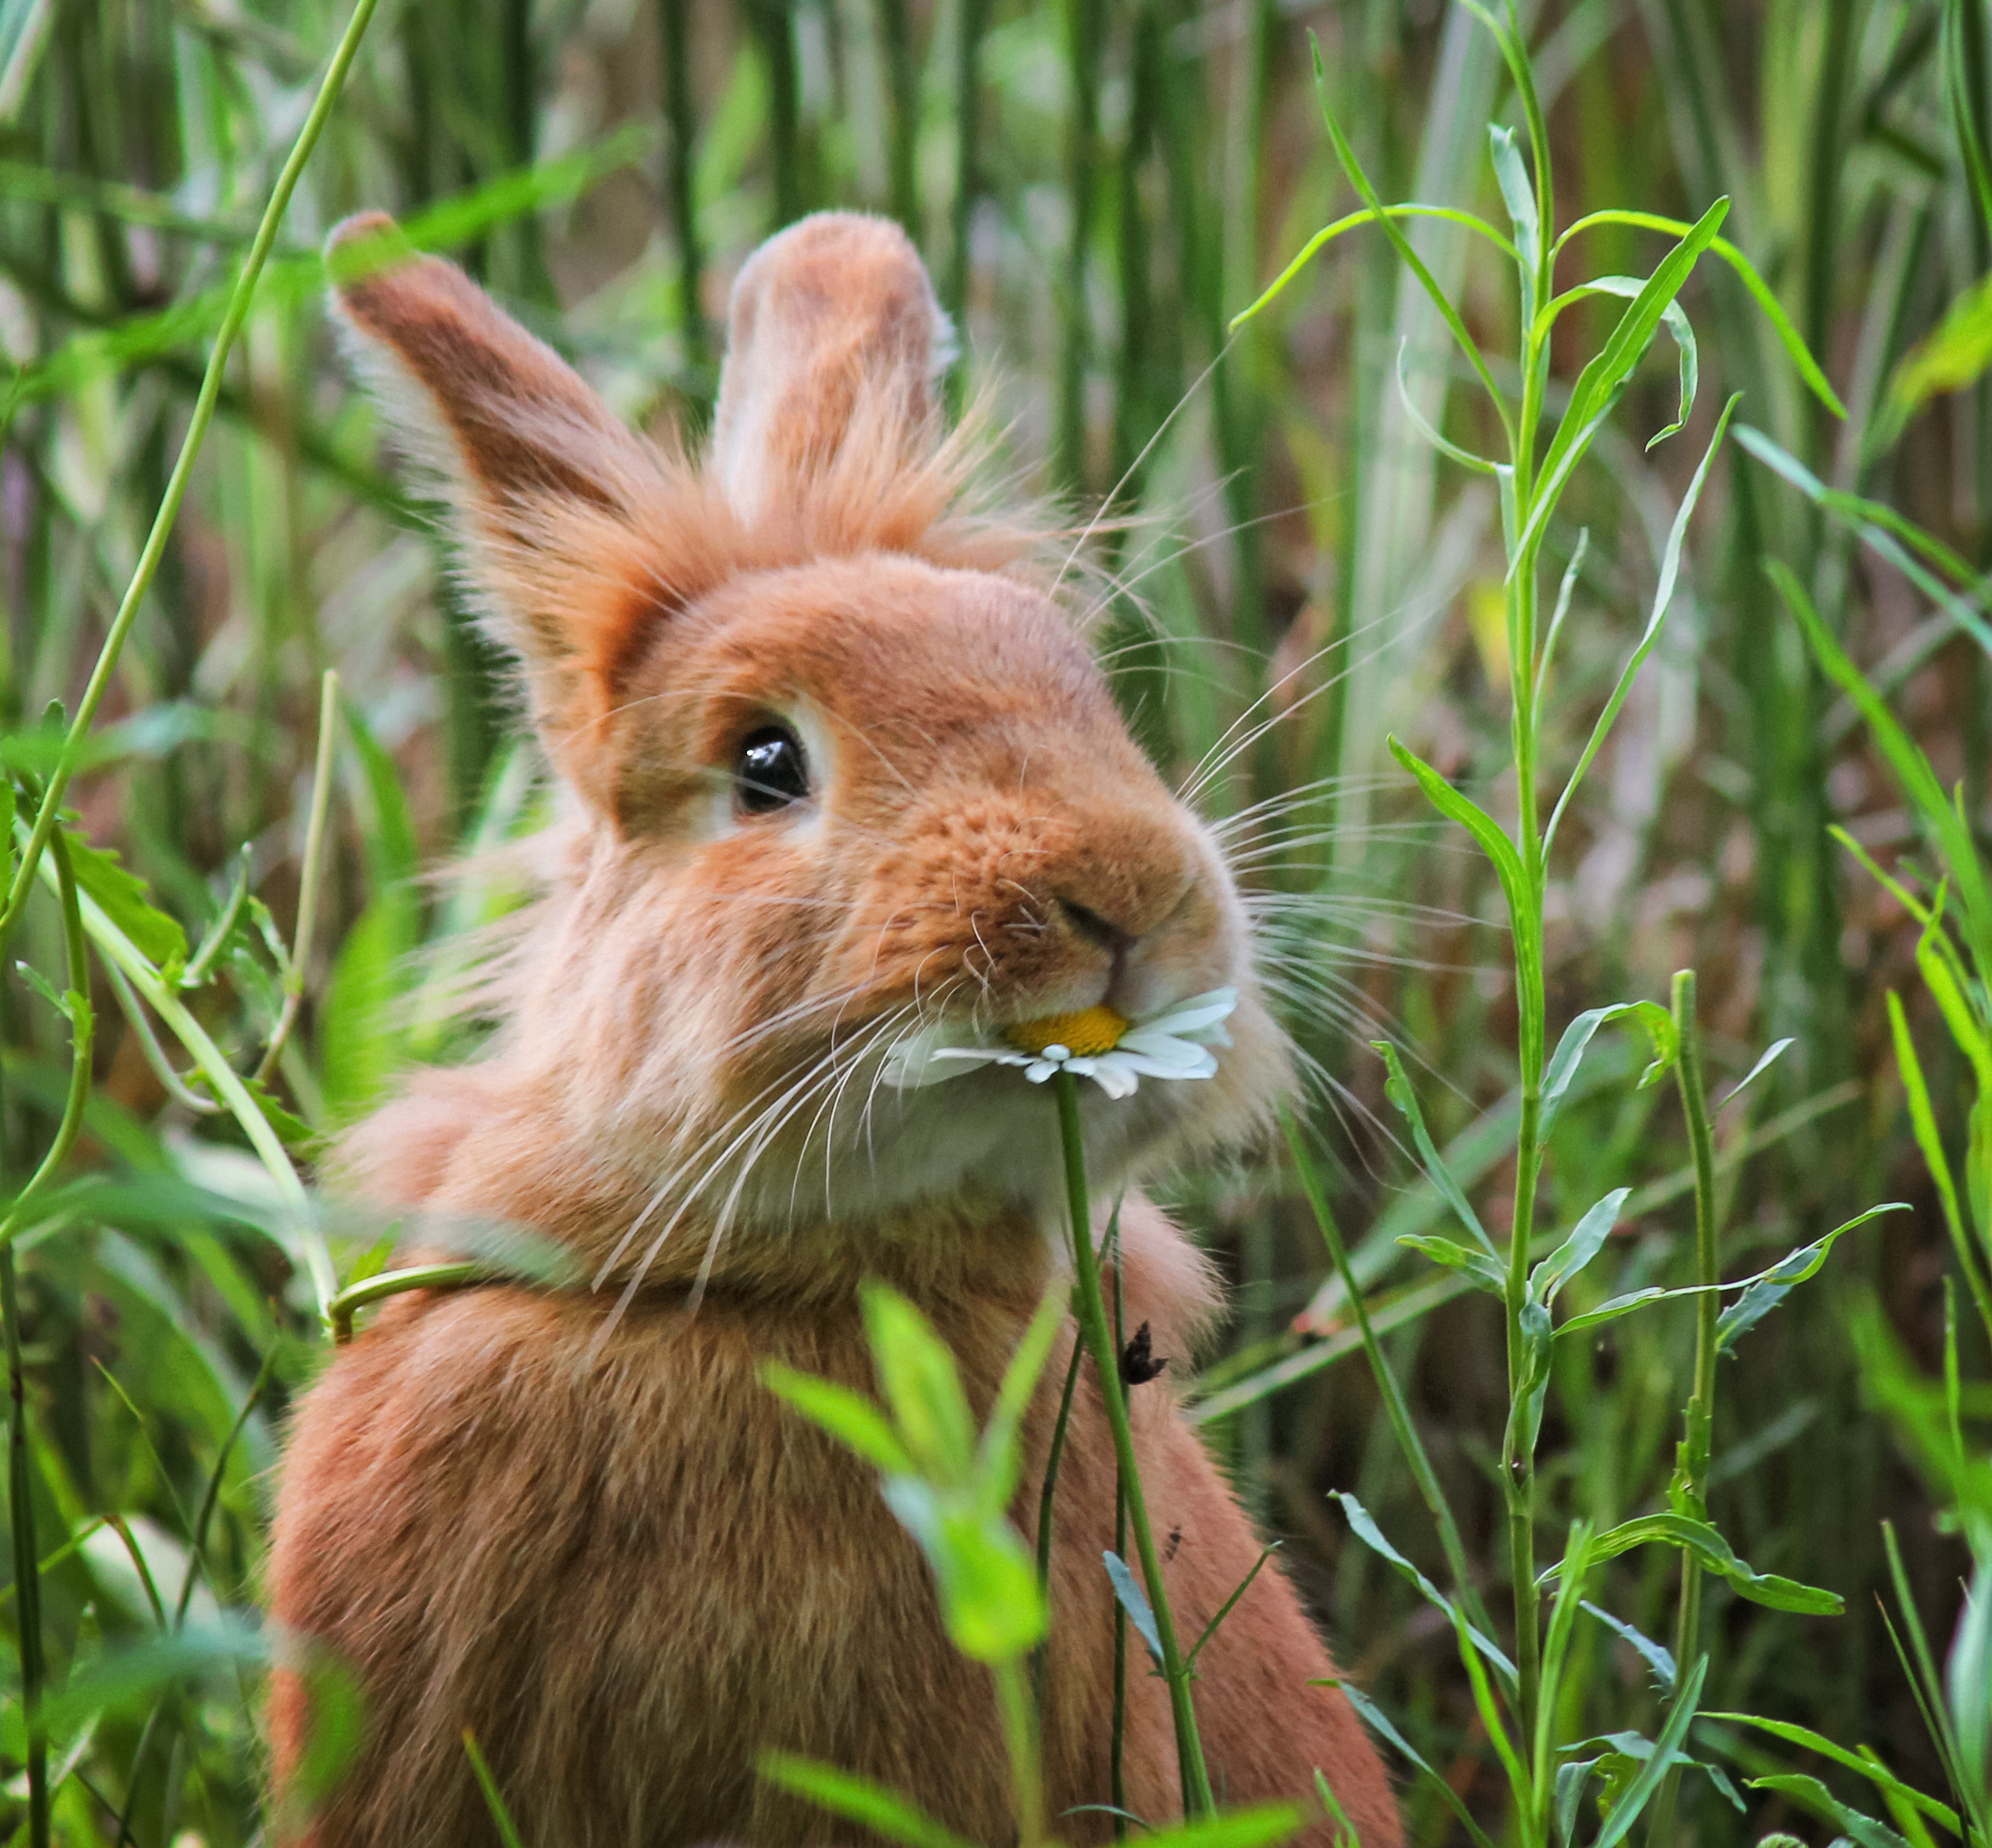 Comely A City Guard Your Rabbits Official Blog A Rabbit Eating A Daisy At A Local Wildlife Sanctuary Park Park Seed Will Rabbits Eat Watermelon Rinds Do Rabbits Eat Watermelon Plants houzz-02 Can Rabbits Eat Watermelon